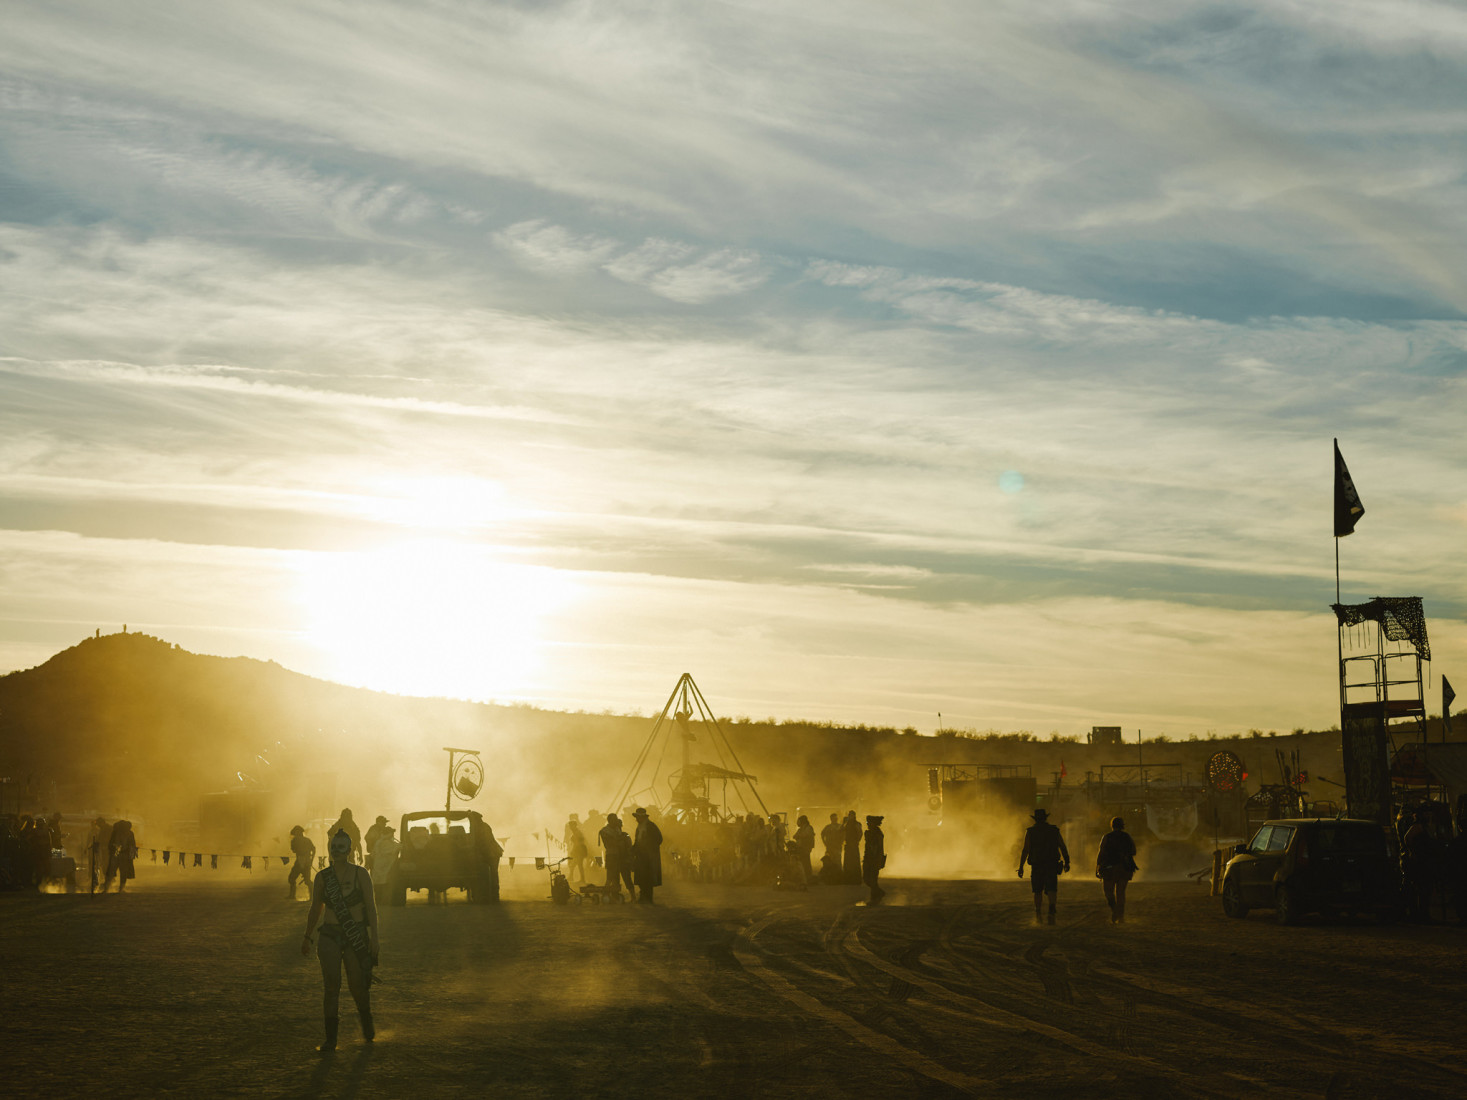 Sunset at Wasteland Weekend festival